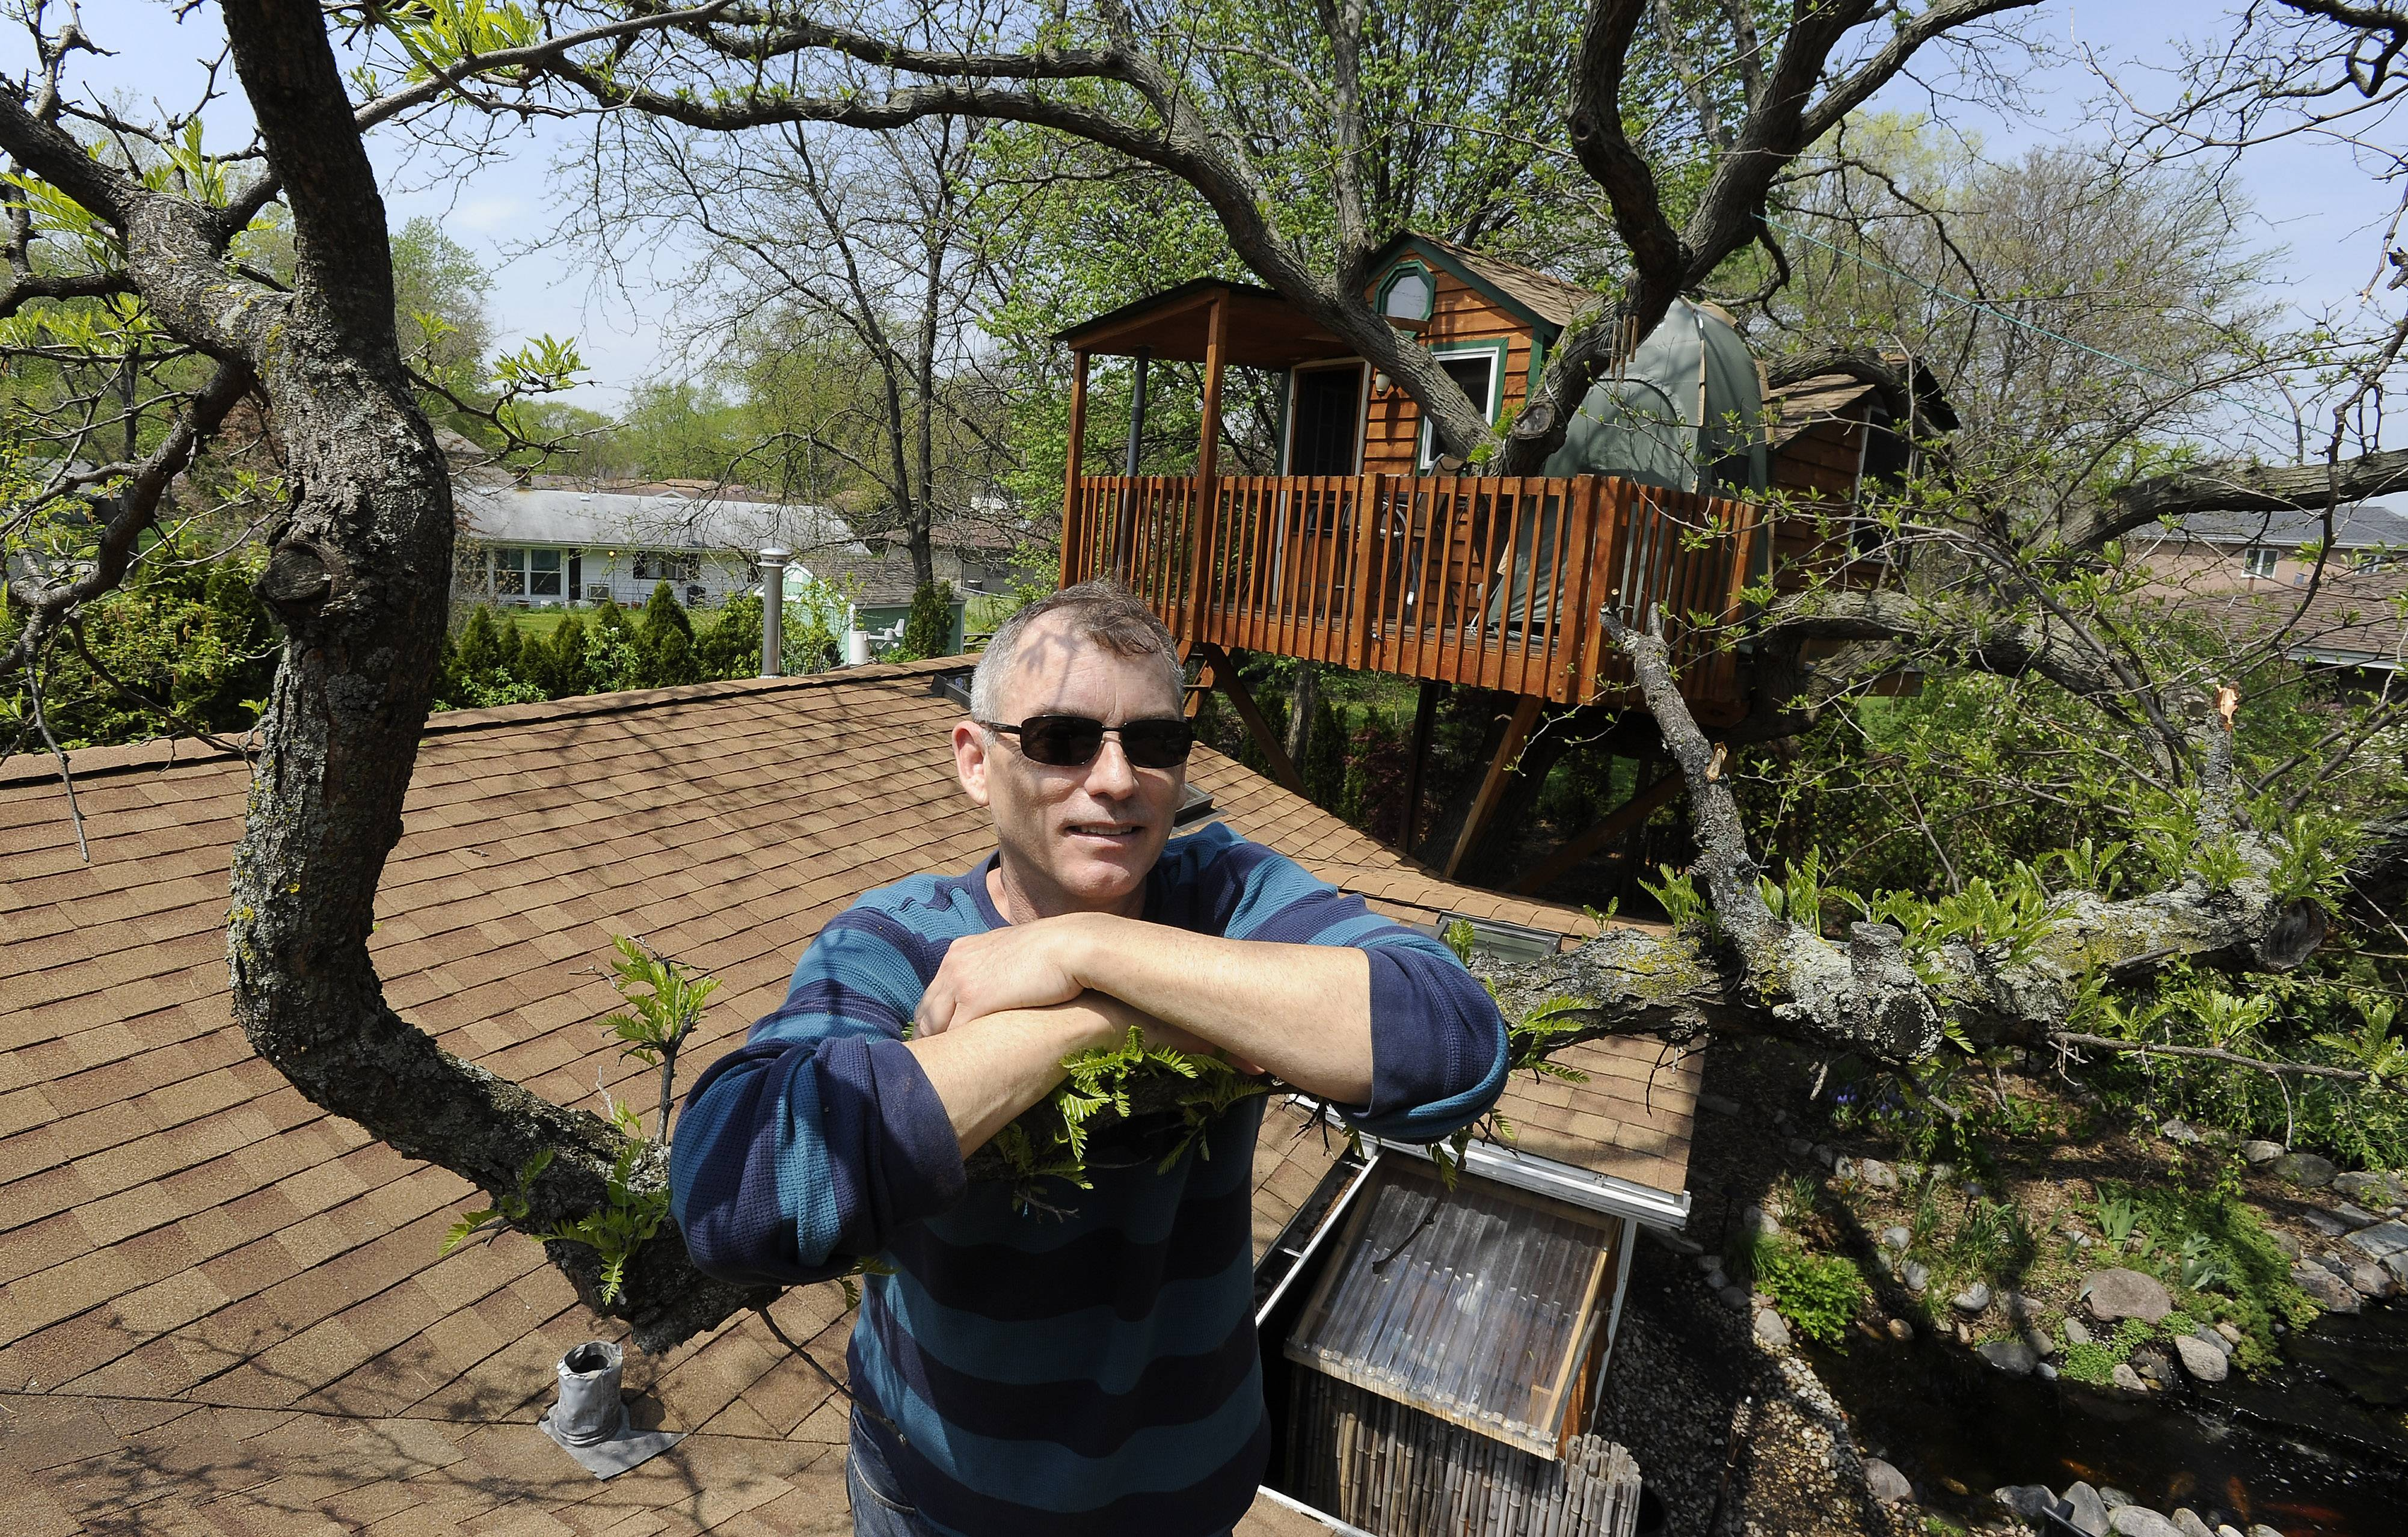 Dan Alexander's luxury treehouse in Schaumburg has increased in popularity among Airbnb.com renters over the past year. He said he has no problem with an 8 percent hotel tax the Schaumburg officials plan to impose on his overnight guests.